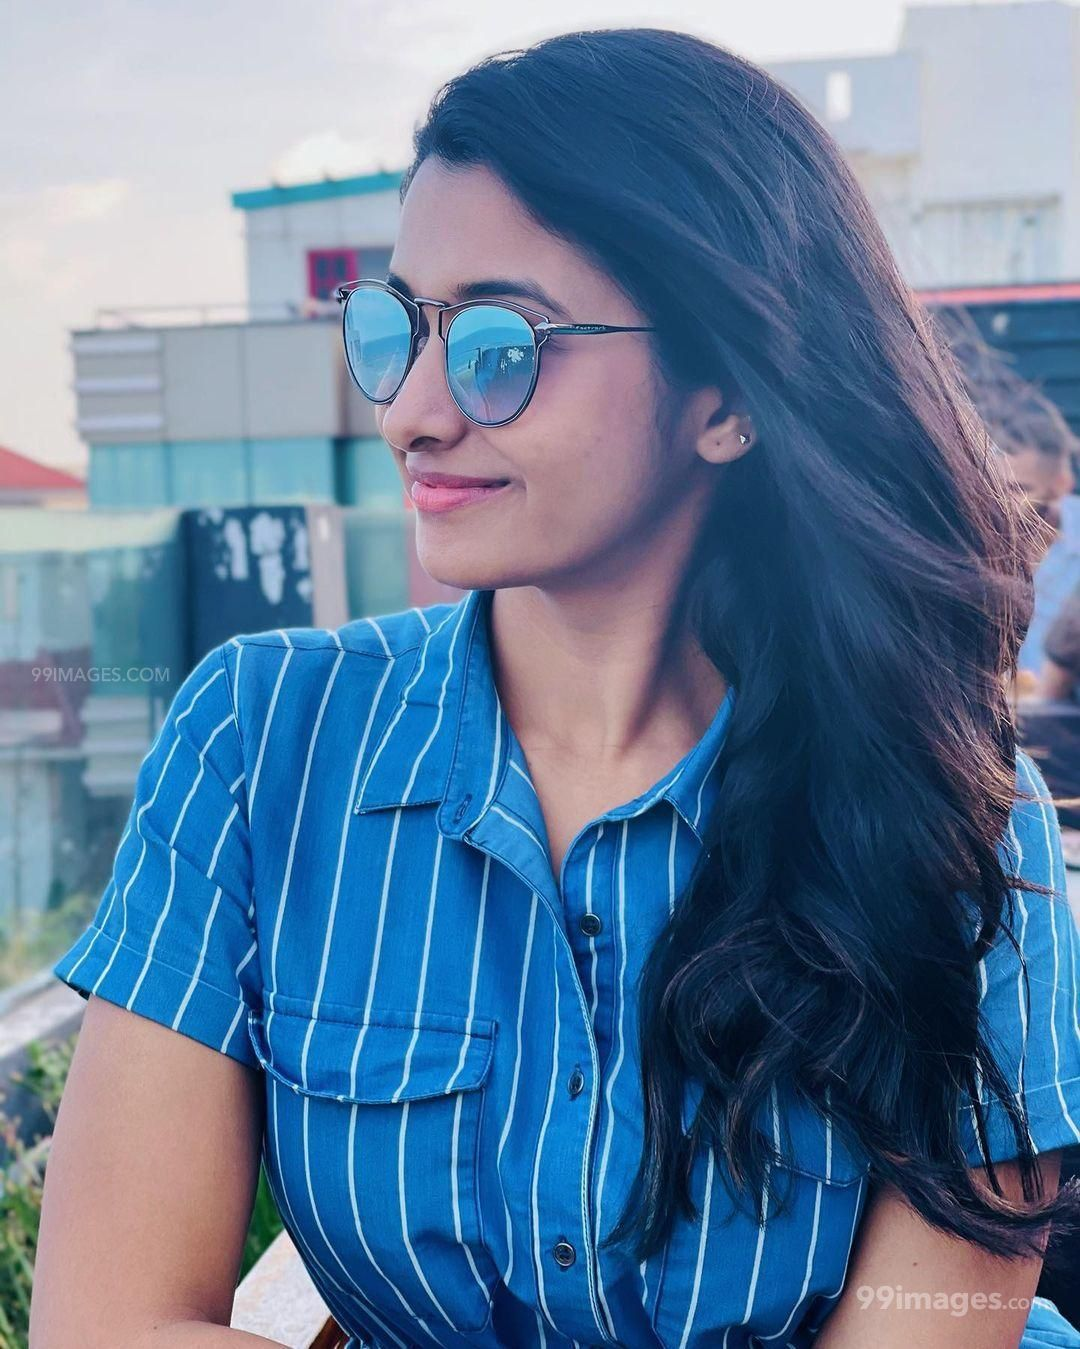 Priya Bhavani Shankar HD Wallpapers (Desktop Background / Android / iPhone) (1080p, 4k)